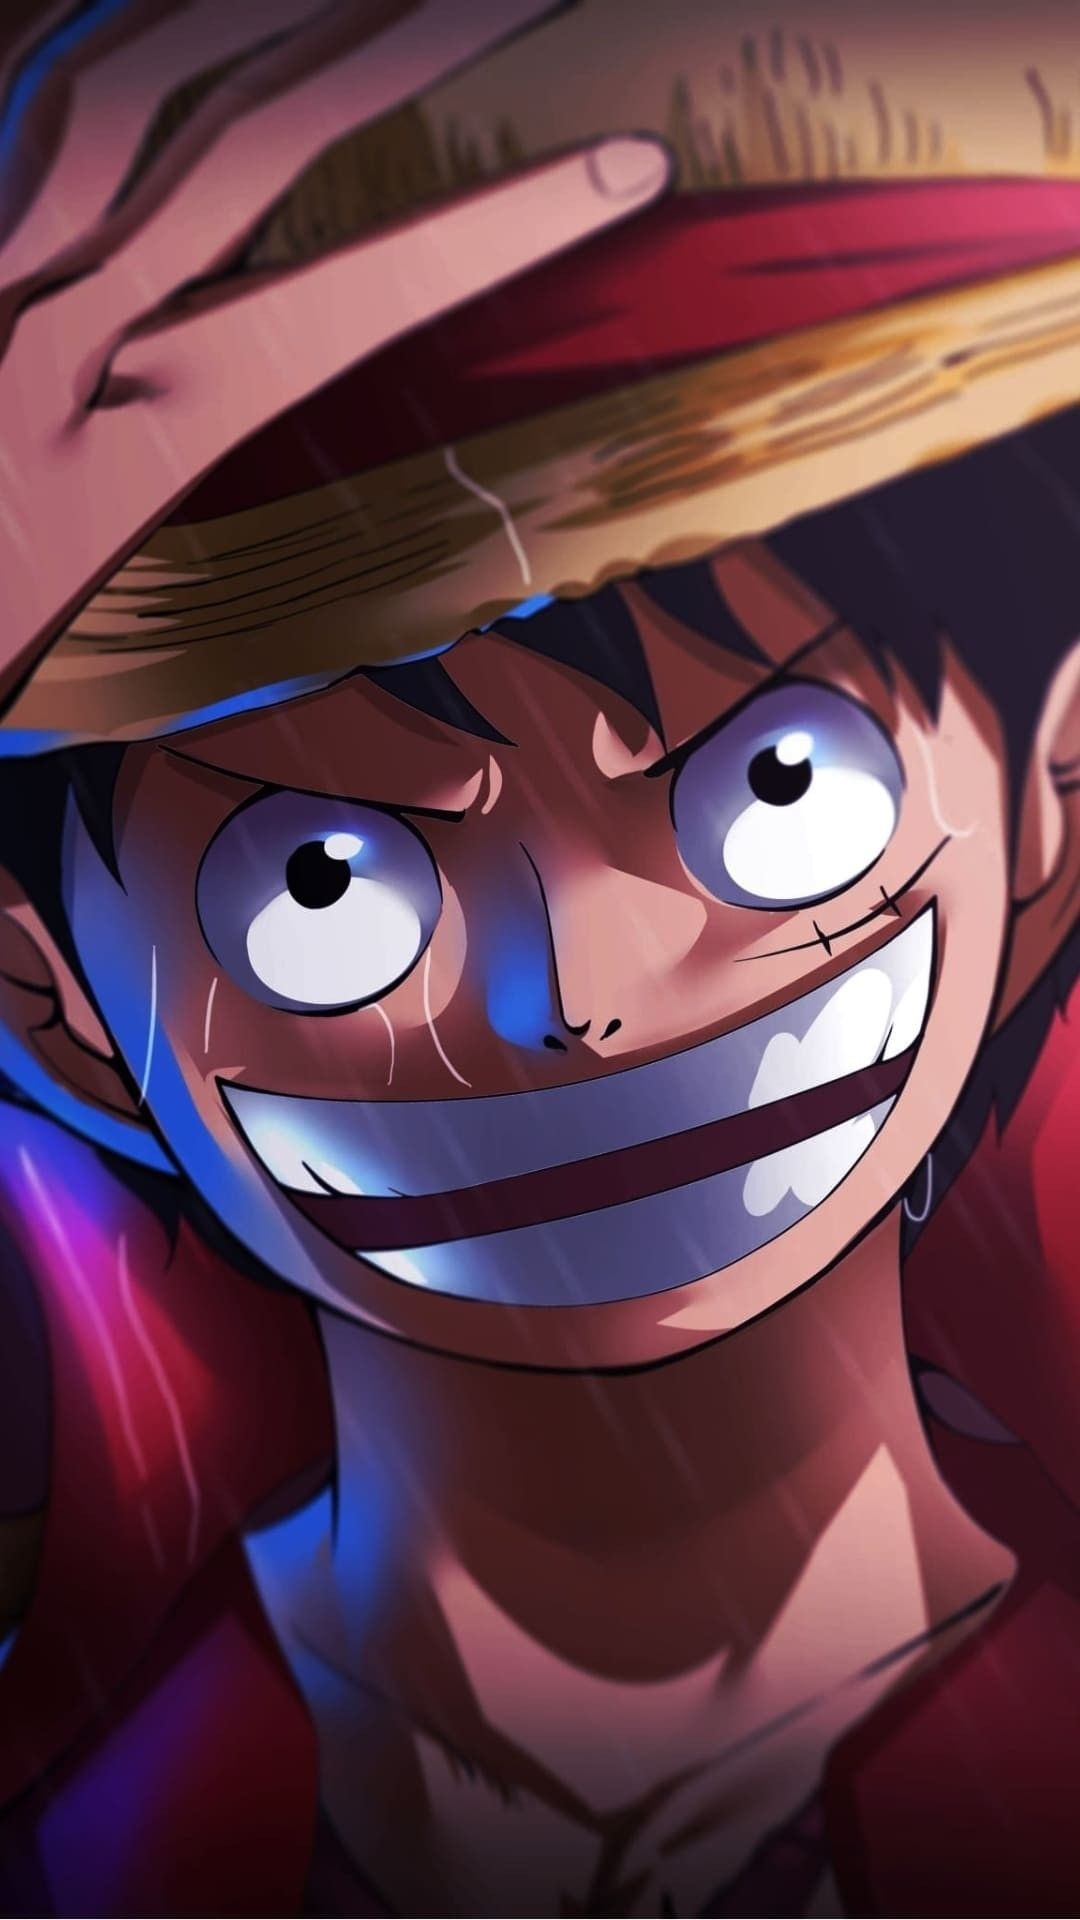 One Piece Wallpaper For Iphone Manga Anime One Piece Anime Wallpaper One Piece Wallpaper Iphone